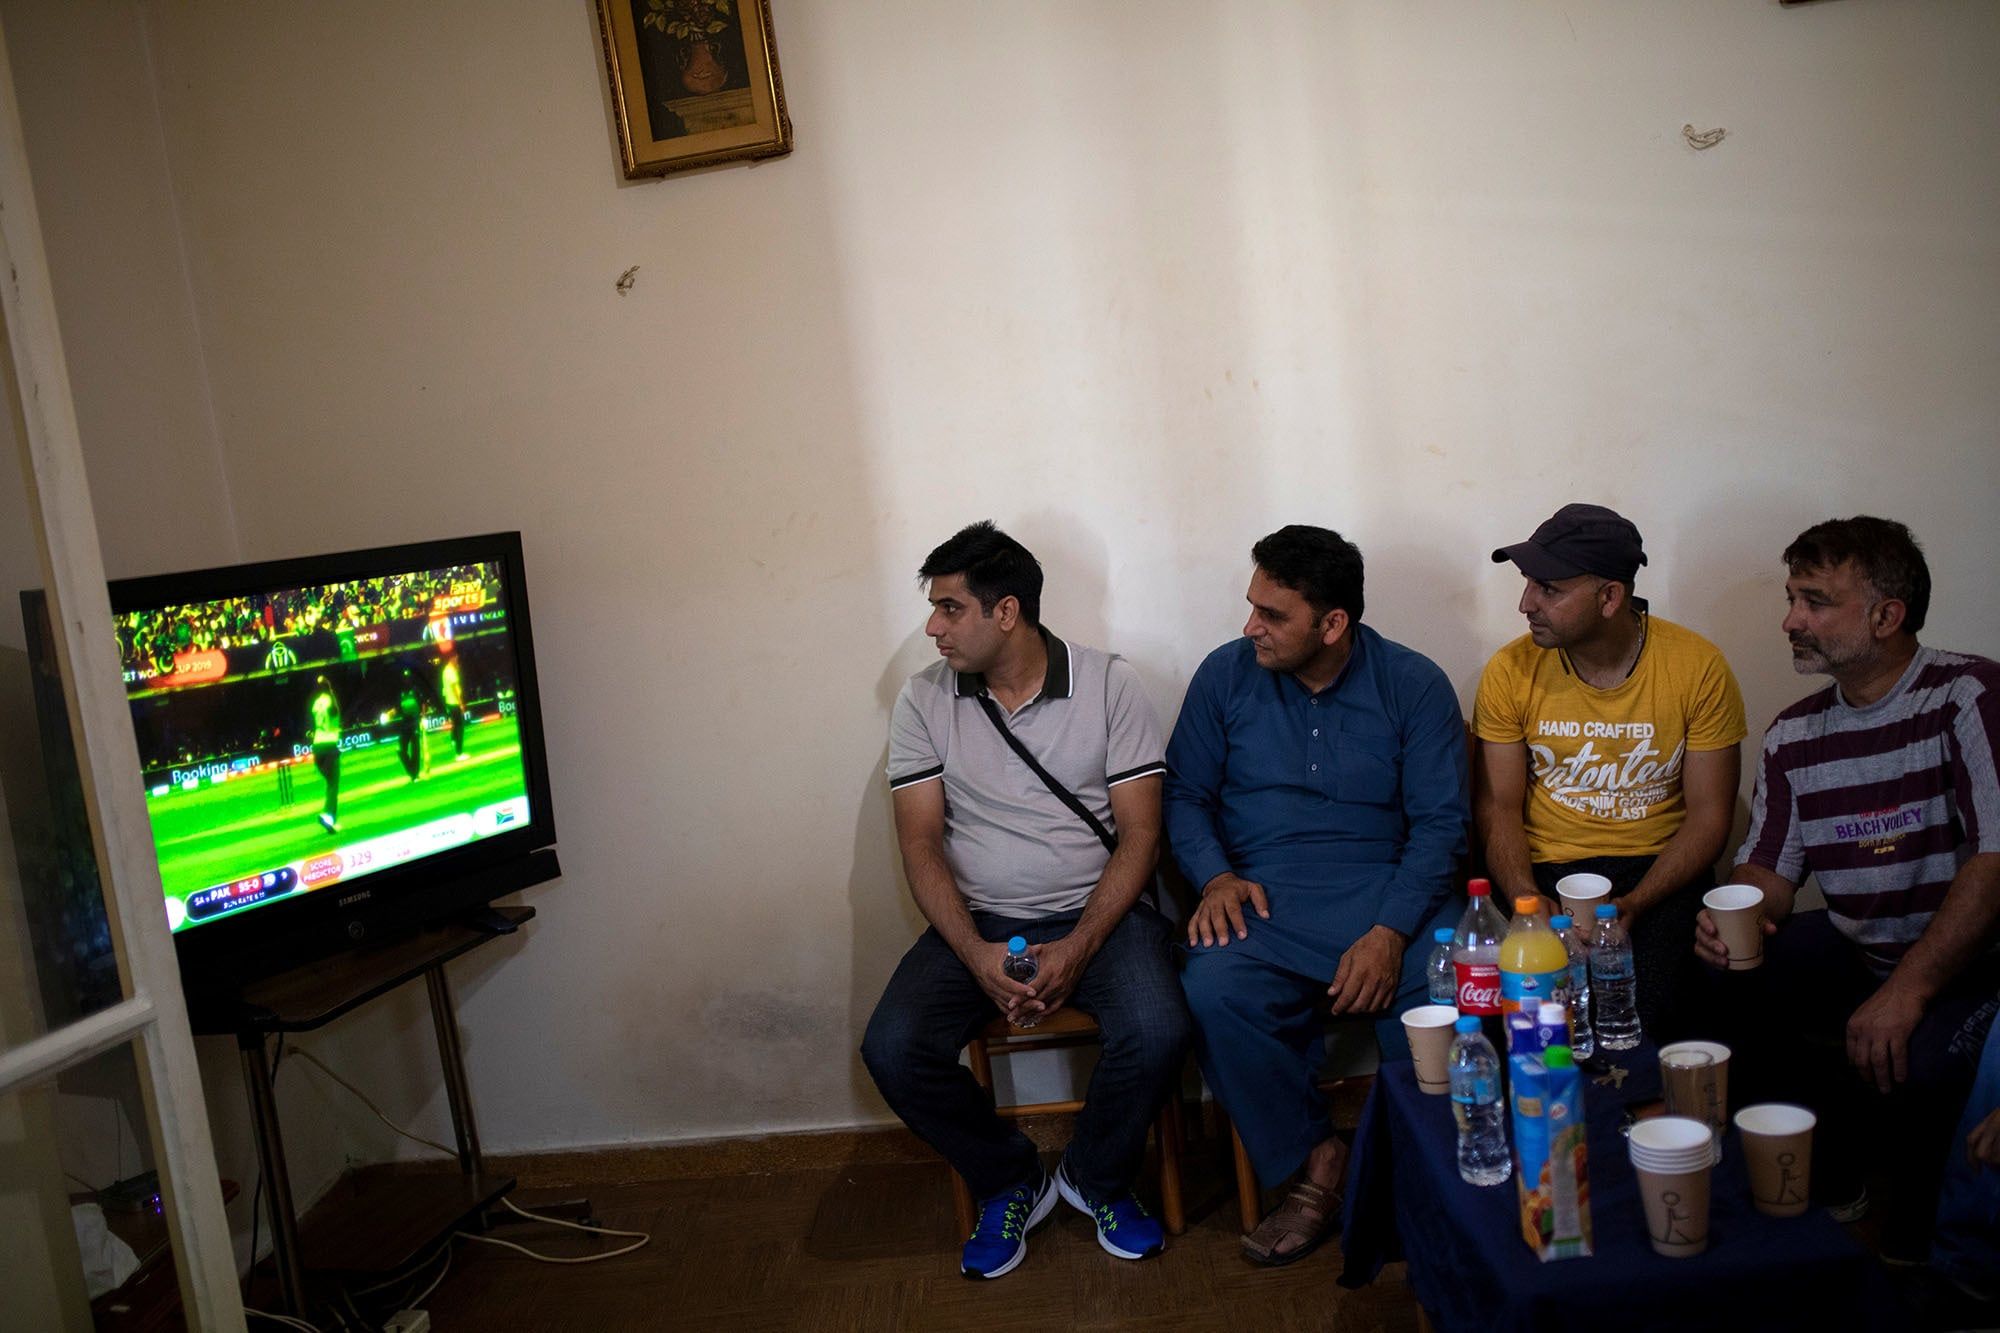 Pakistani men living in Greece watch their national cricket team's World Cup game against South Africa in an apartment in Athens, Greece on June 23. — Reuters